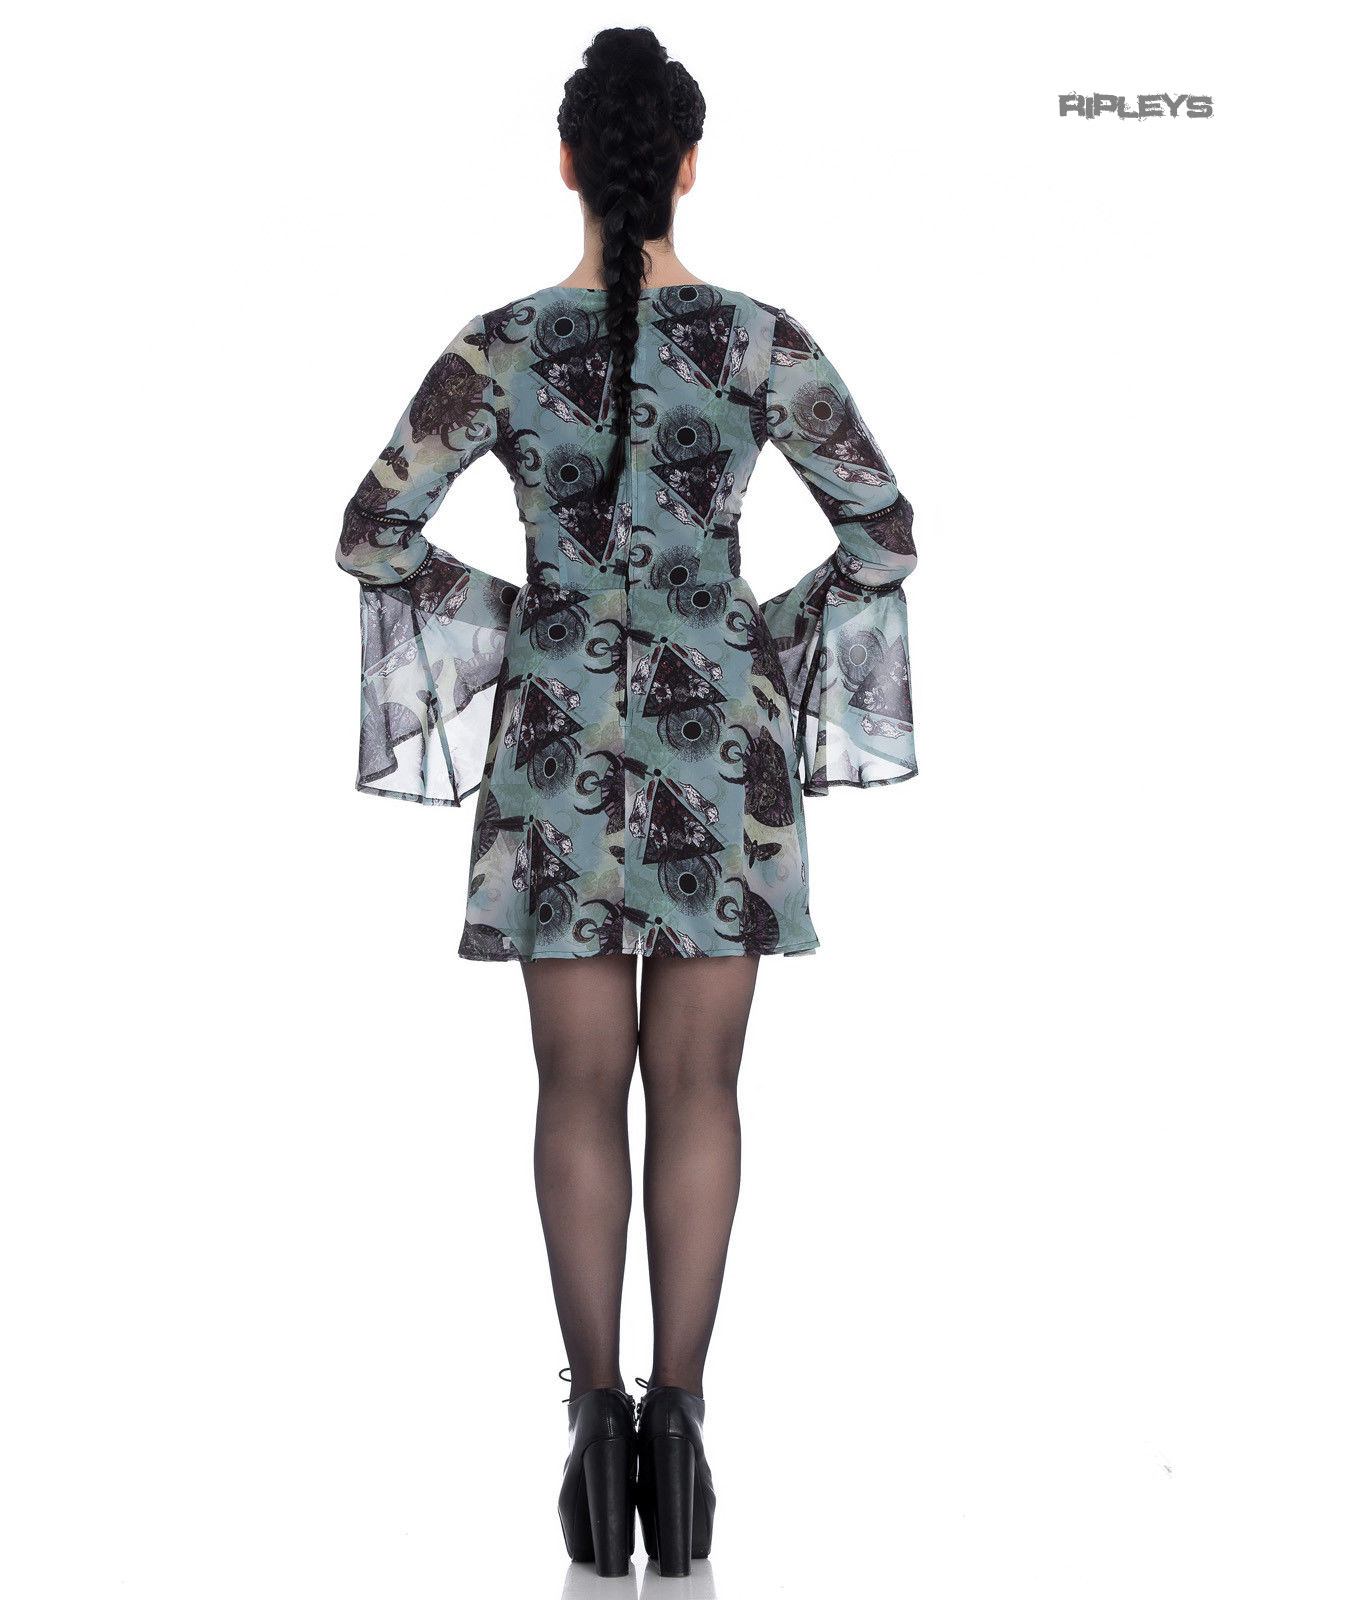 Hell-Bunny-Alchemy-Goth-Floaty-Witch-Mini-Dress-AFTER-DEATH-Teal-Green-All-Sizes thumbnail 12